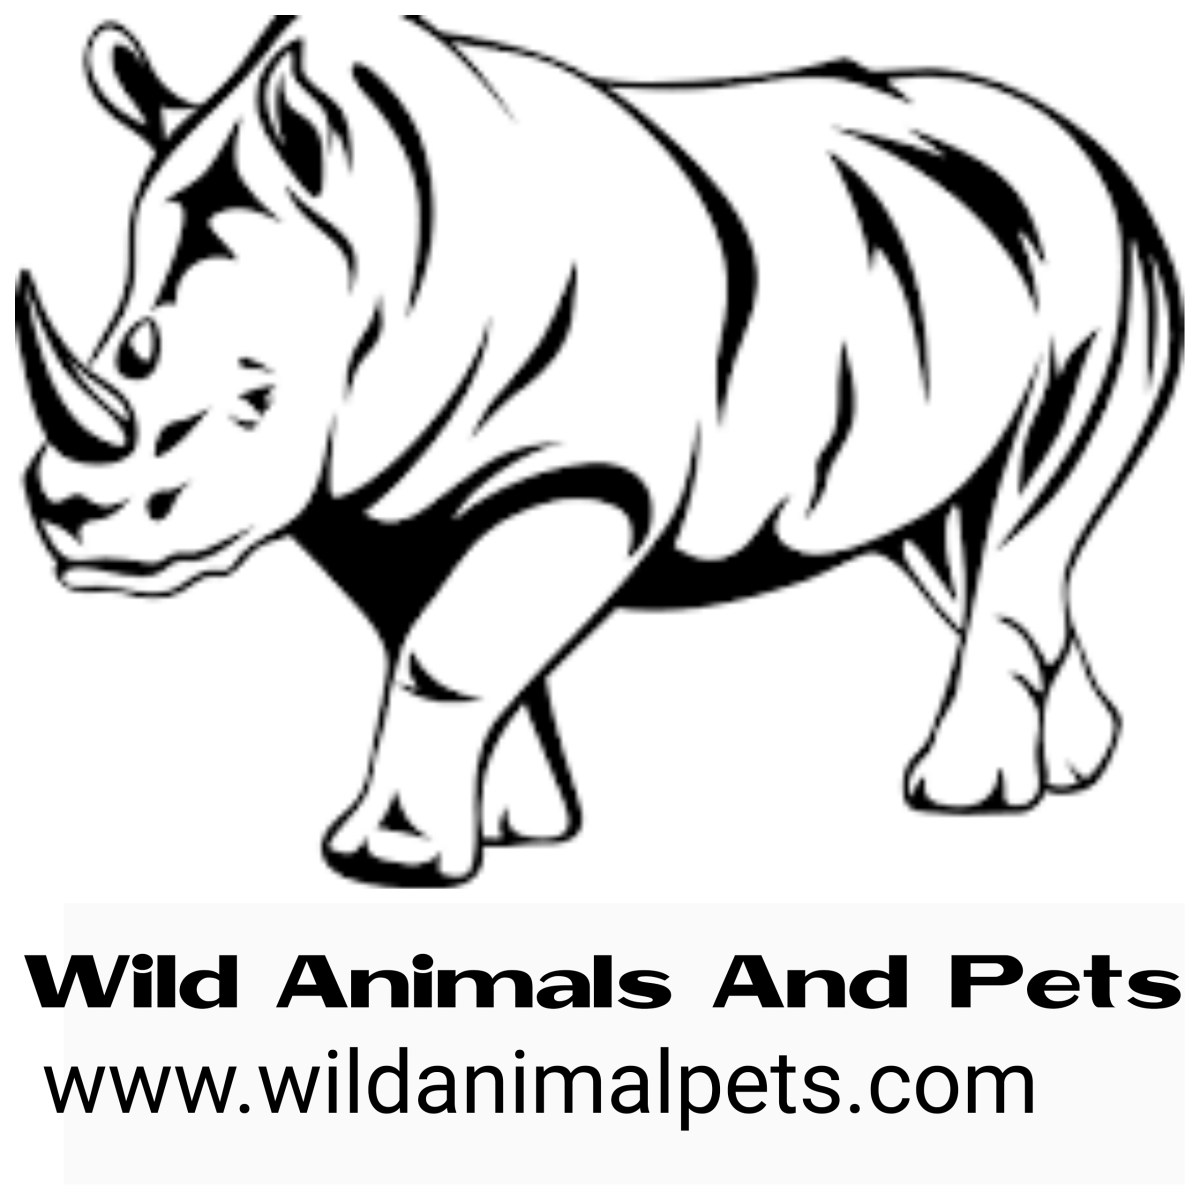 ANIMALS YOU CAN BUY ONLINE AT AFFORDABLE PRICES